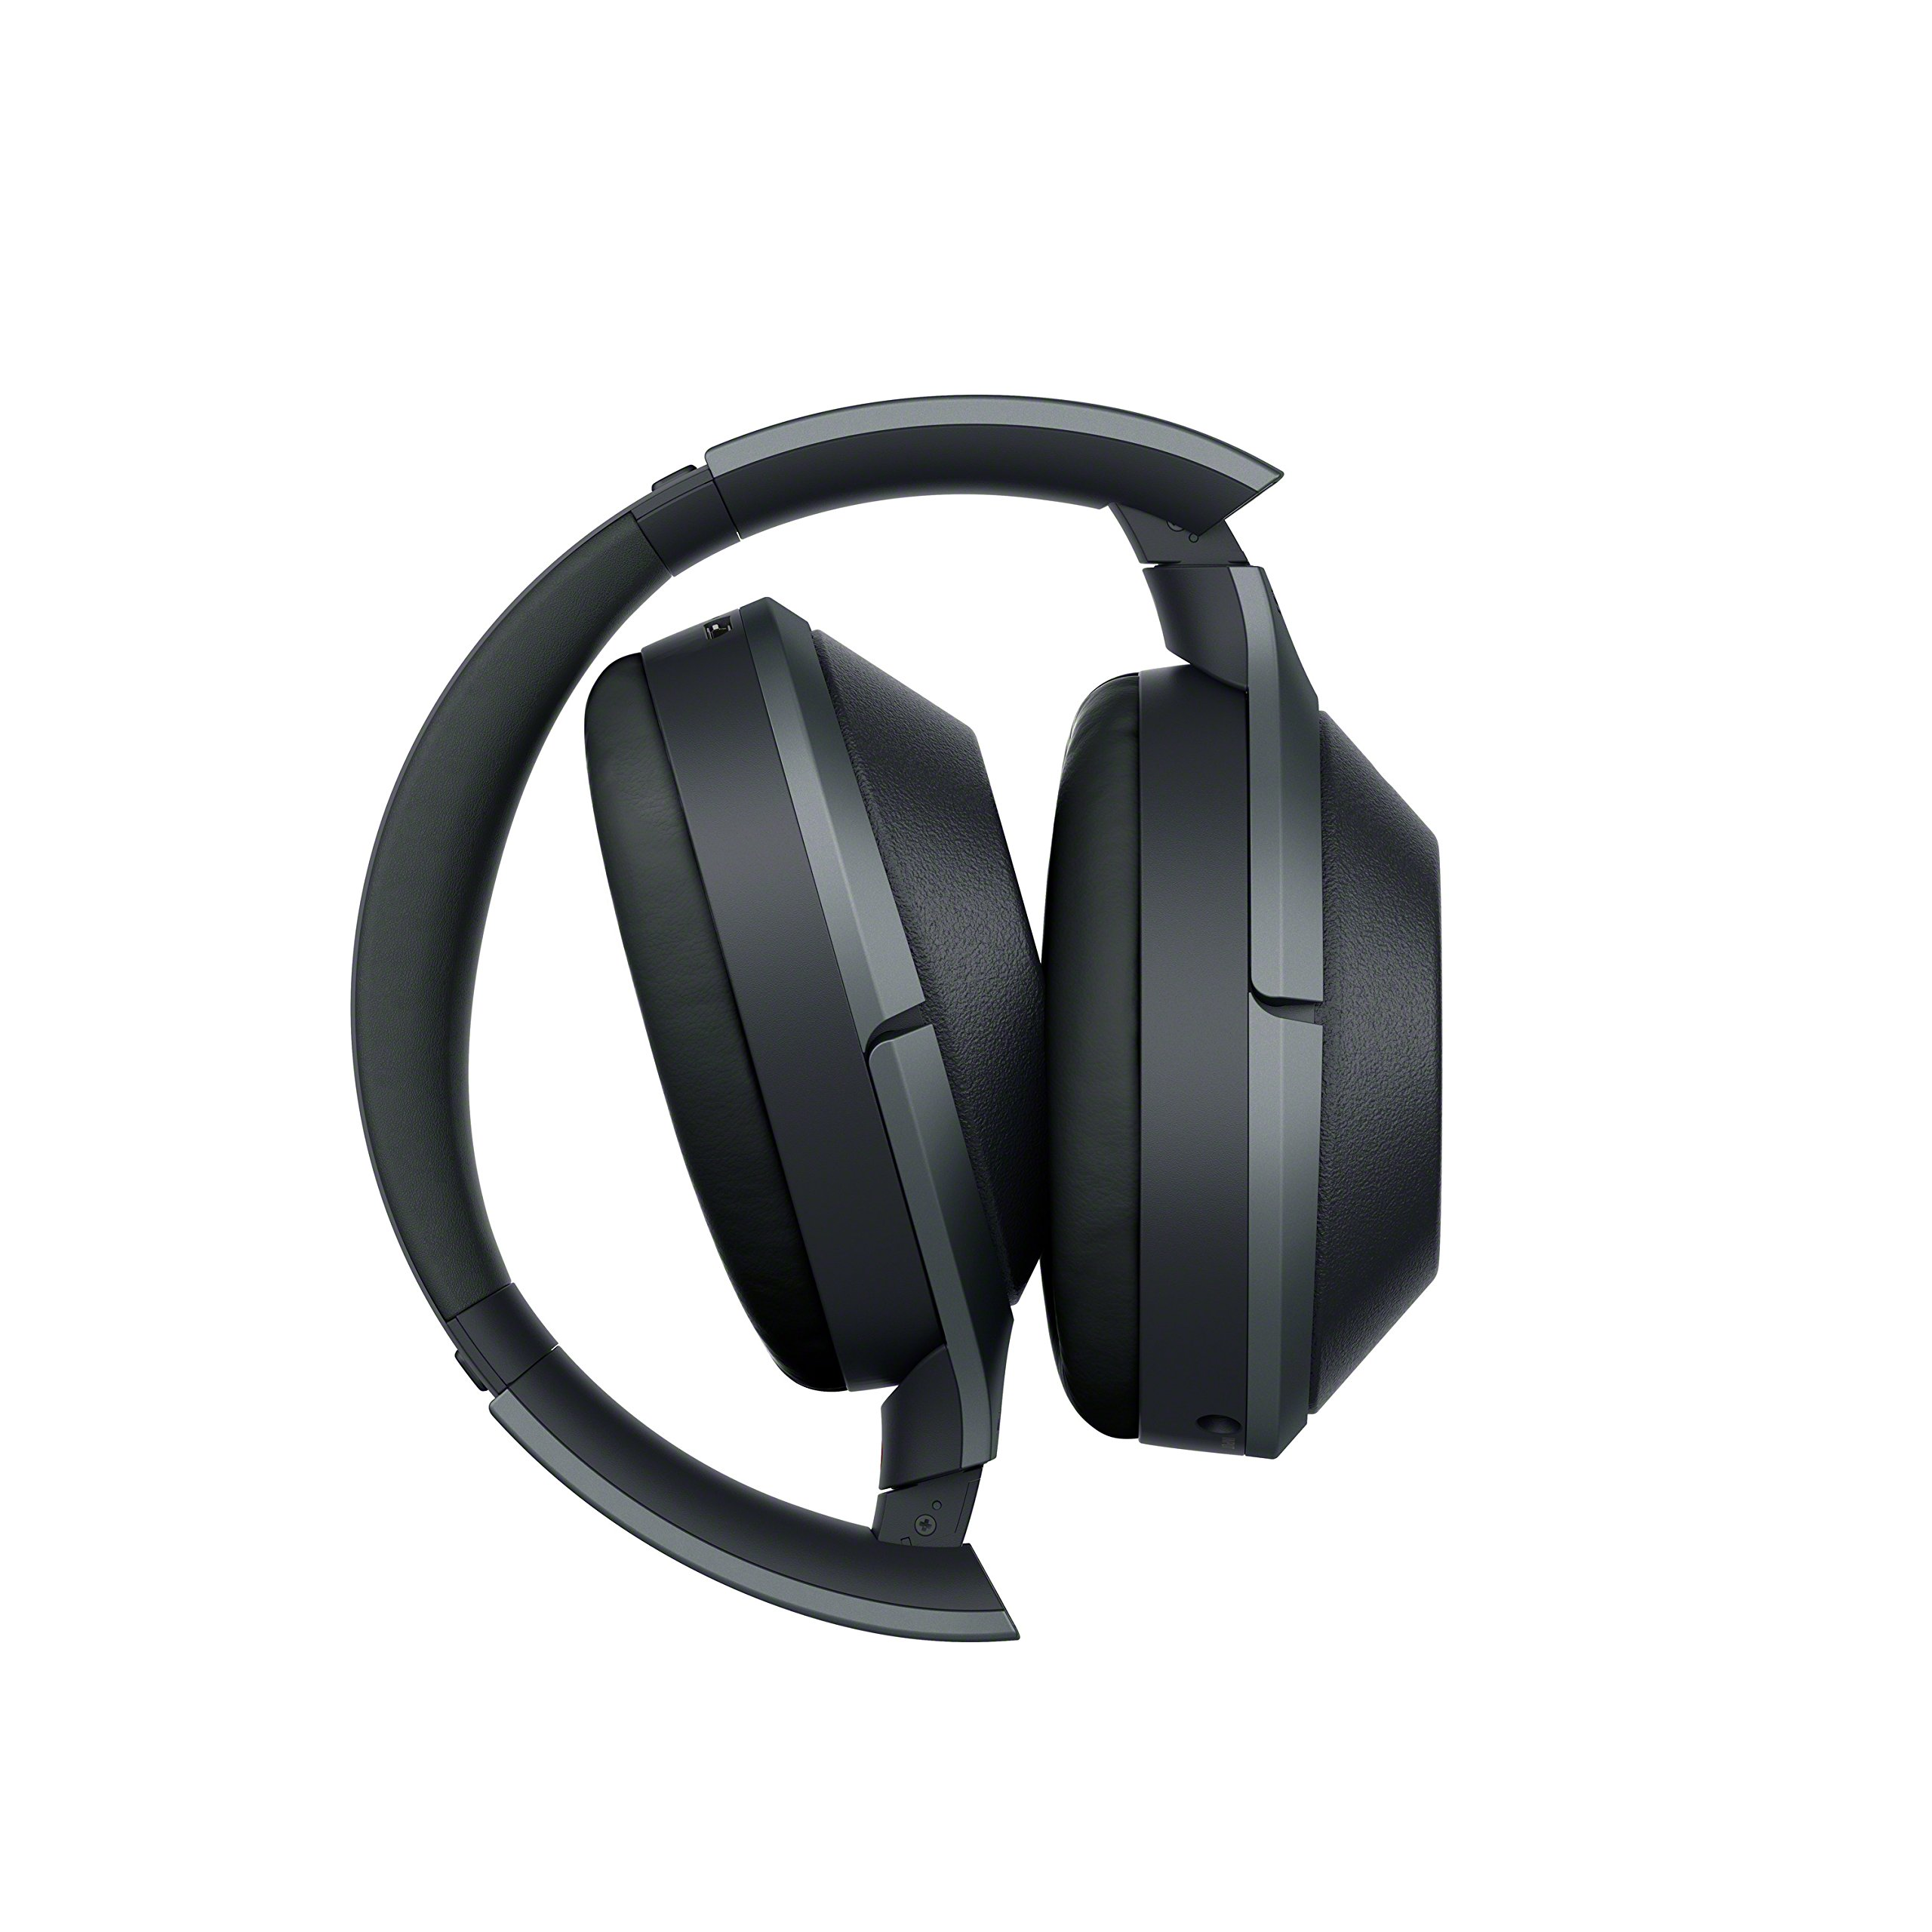 Sony Noise Cancelling Headphones WH1000XM2: Over Ear Wireless Bluetooth Headphones with Case - Black by Sony (Image #8)